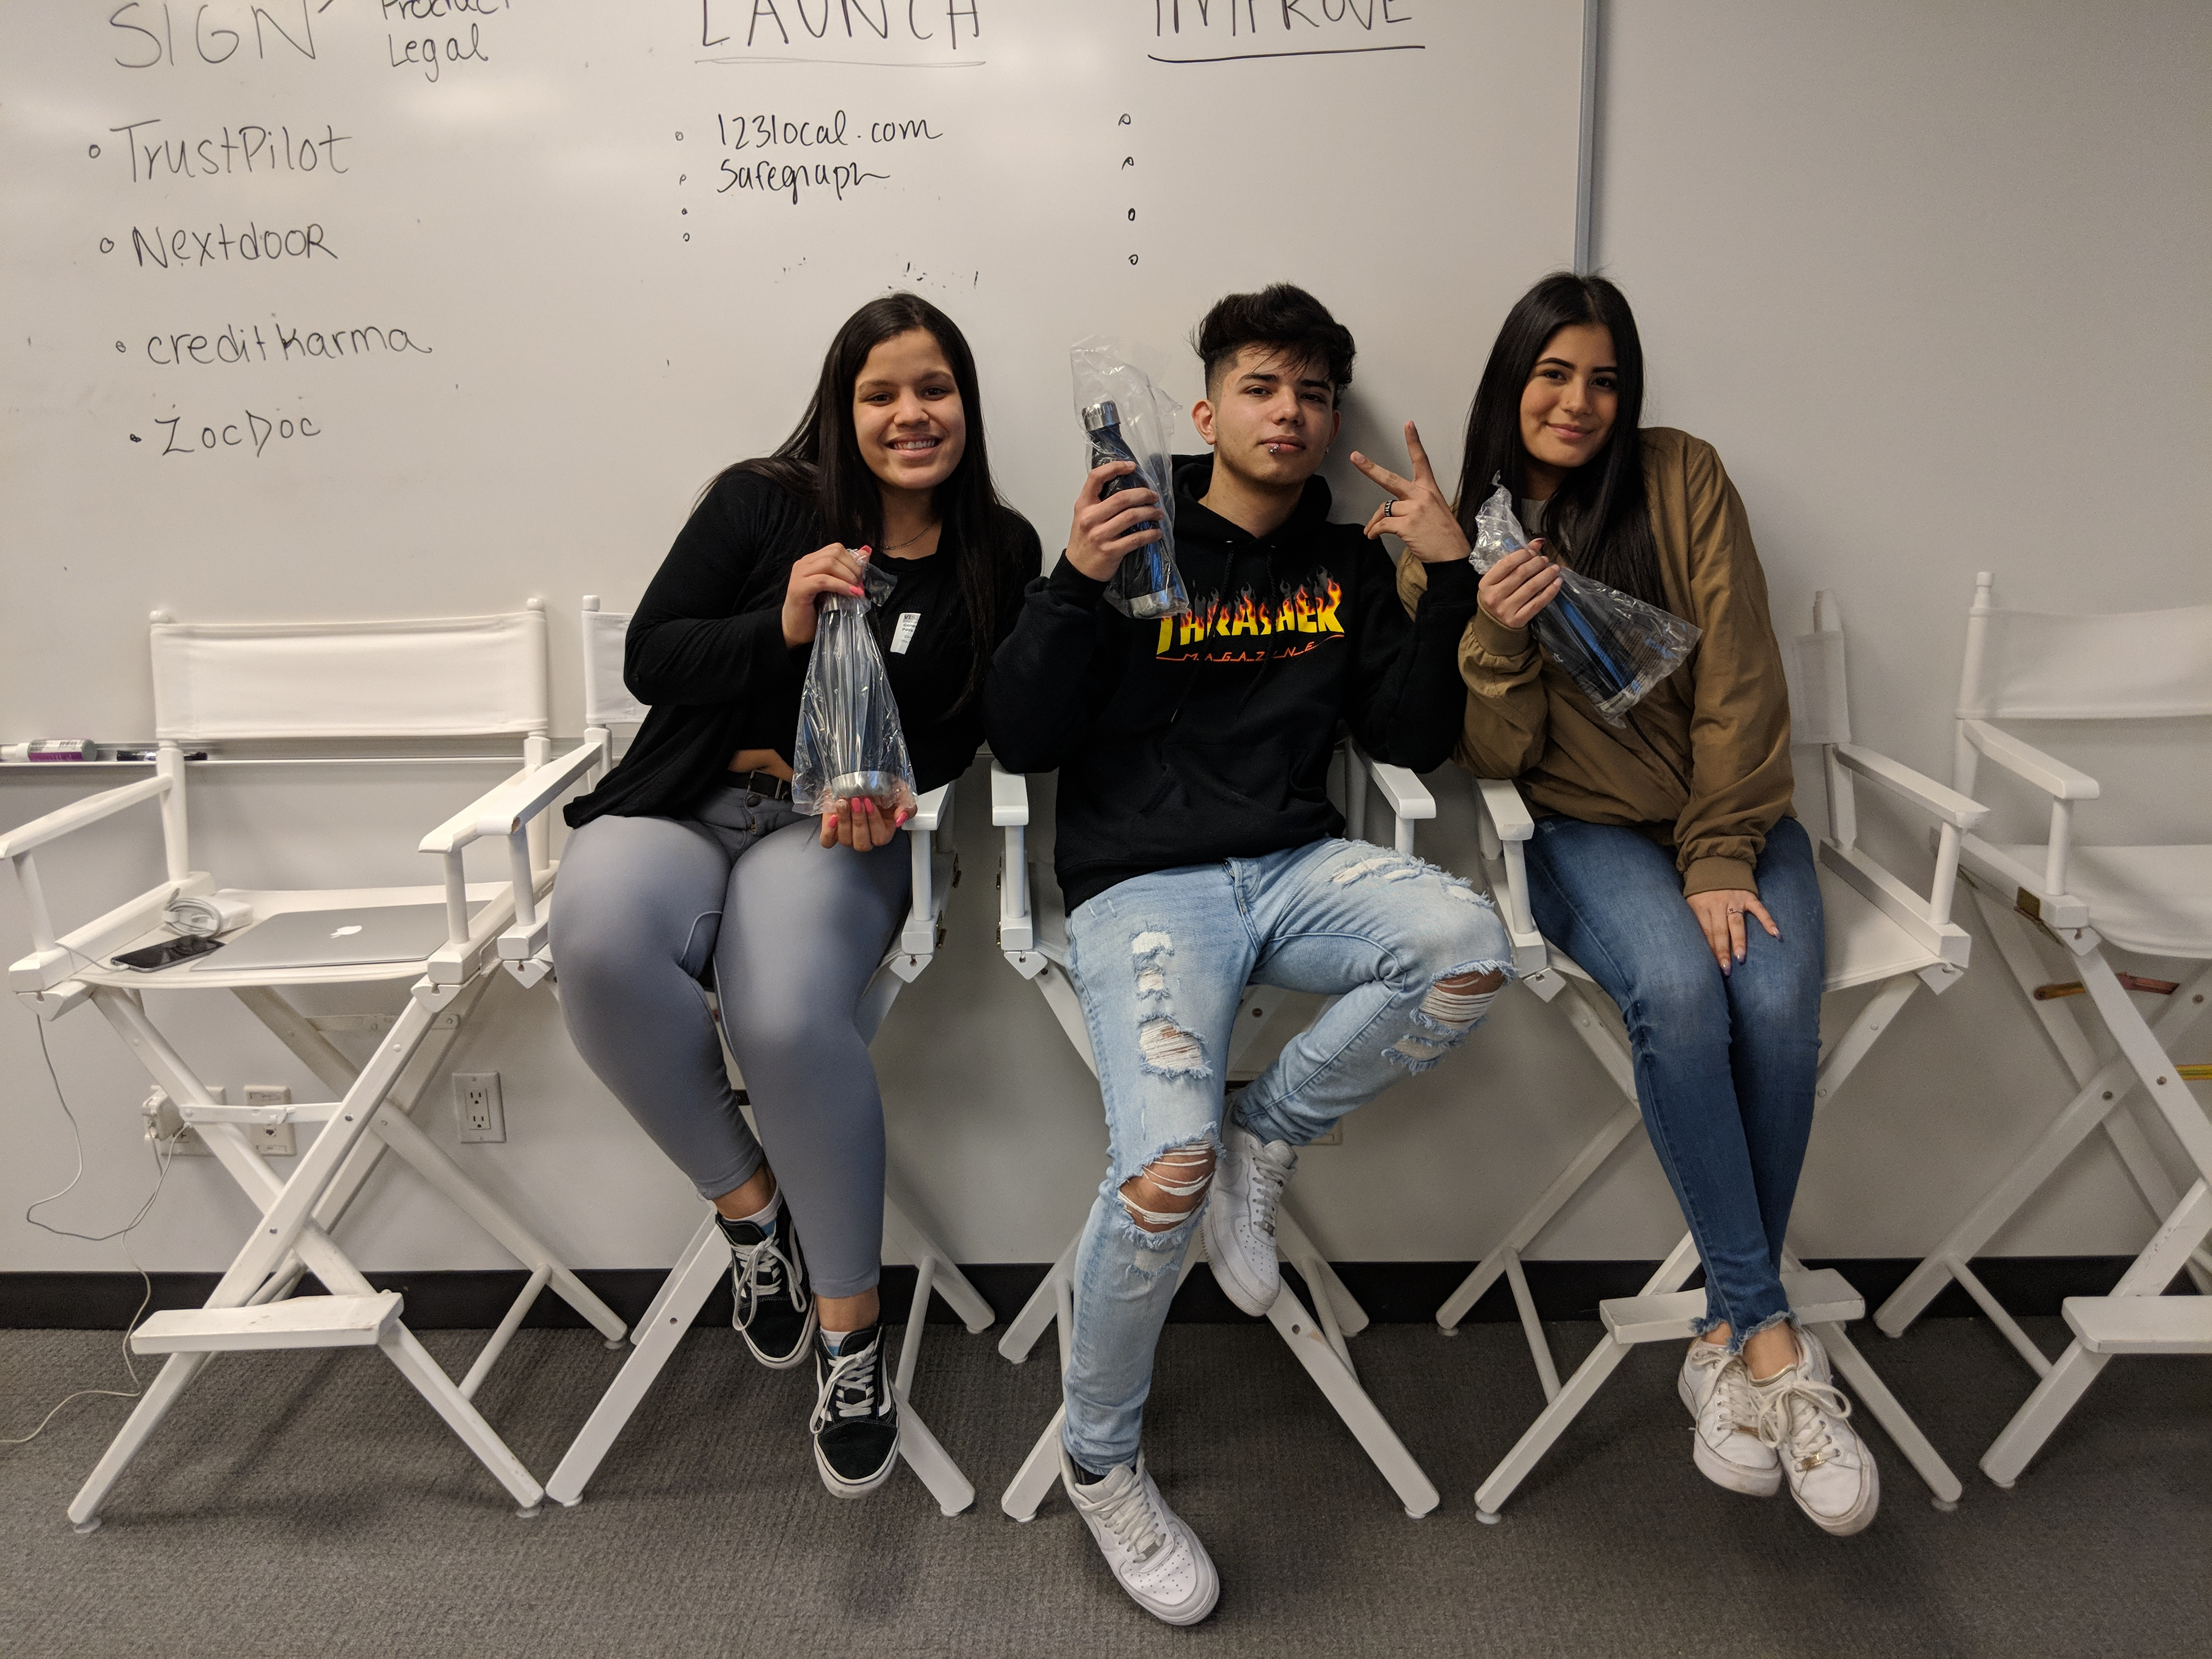 3 students posing with bottles